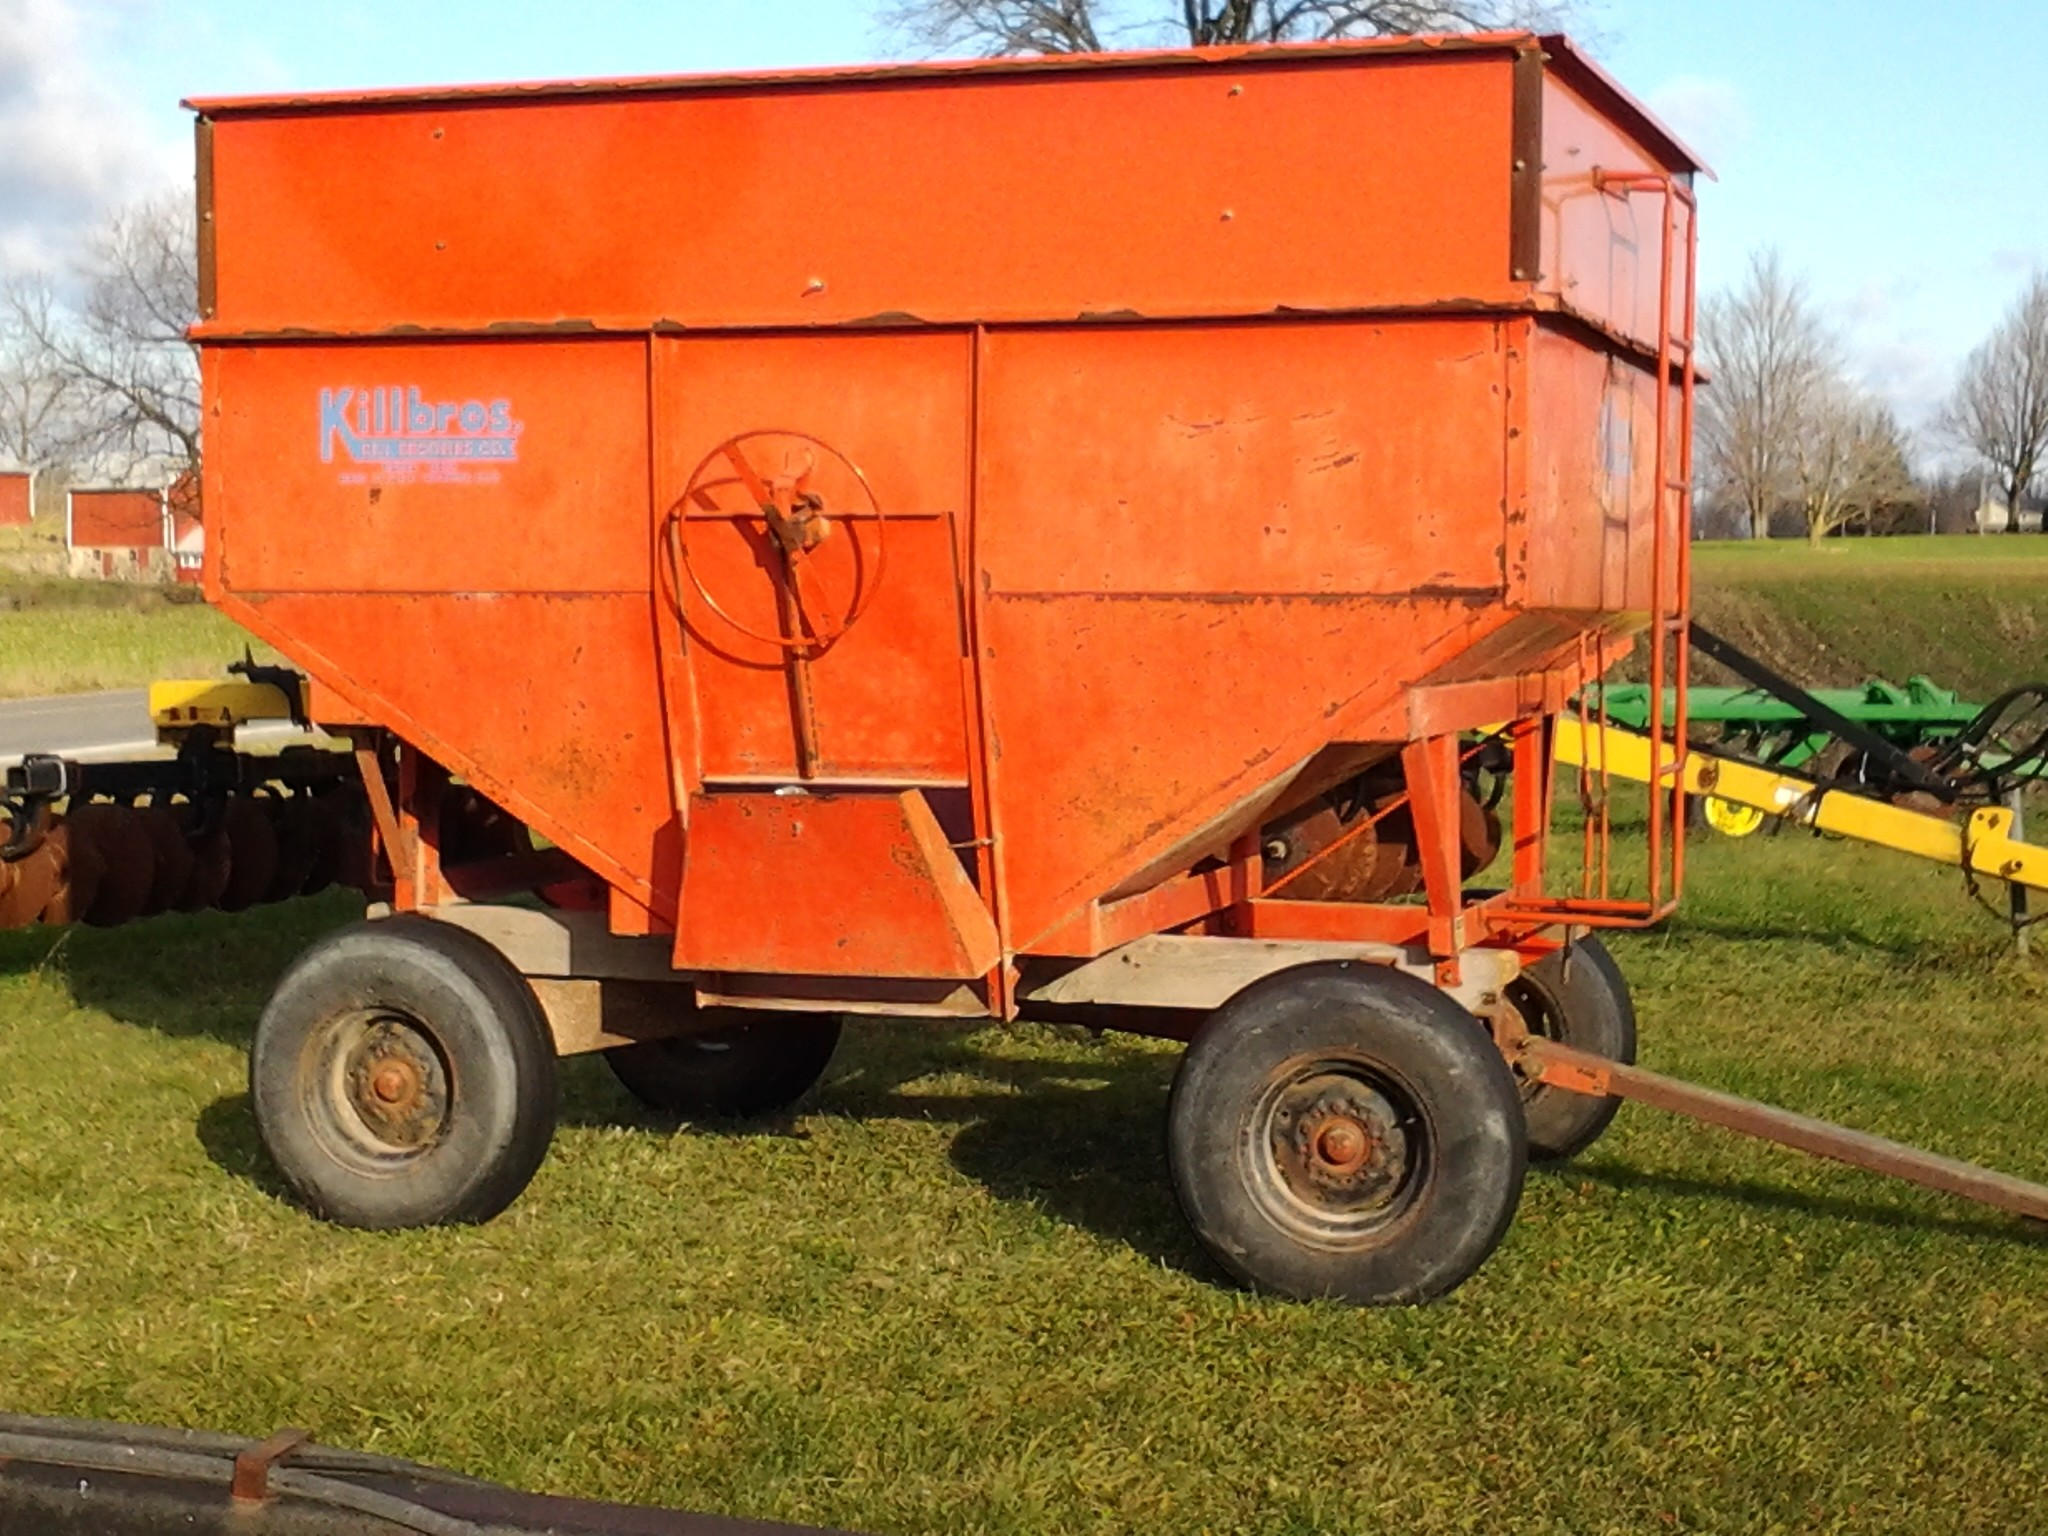 Used, 0, Killbros, Model 350, Agricultural Equipment